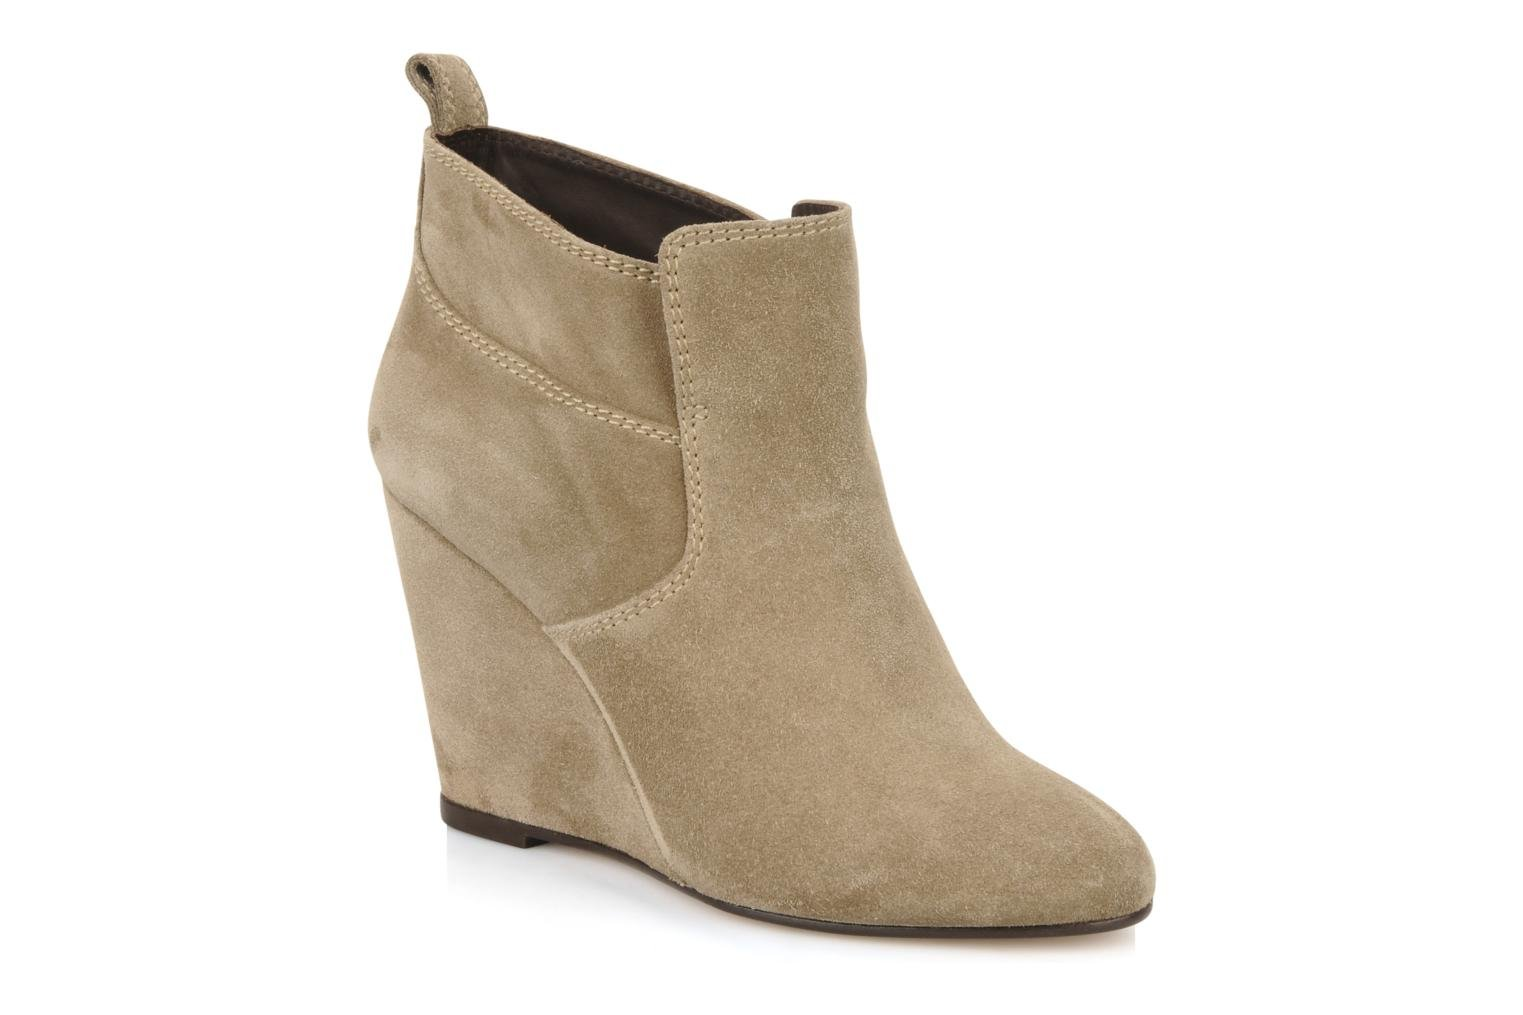 Wedge booty stitch suede Pierre